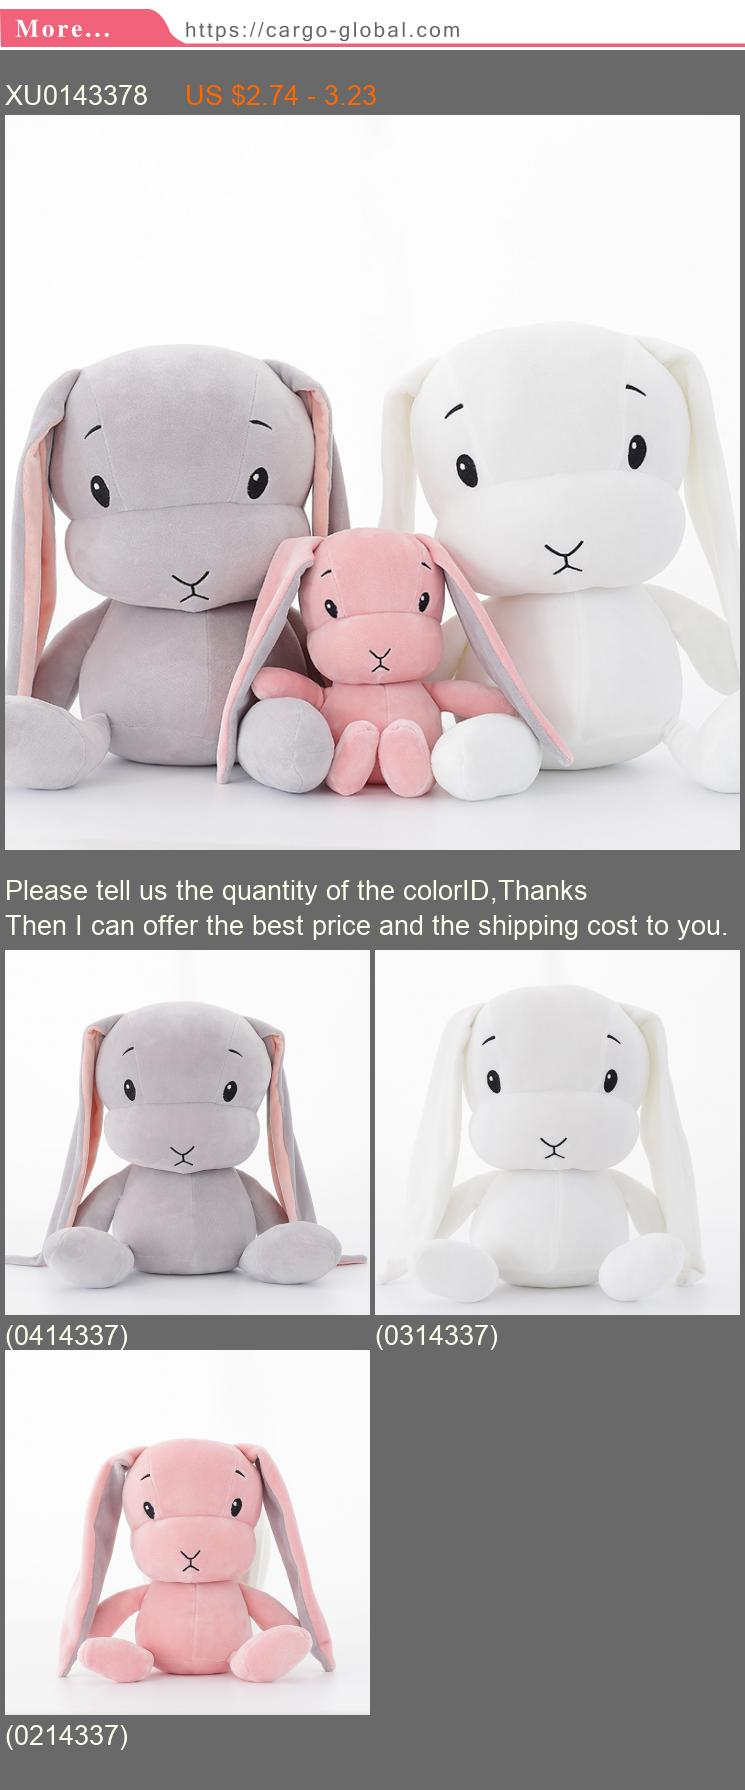 lucky boy Sunday cute rabbit plush toy stuffed soft rabbit doll baby kids toys animal toy birthday Christmas gift